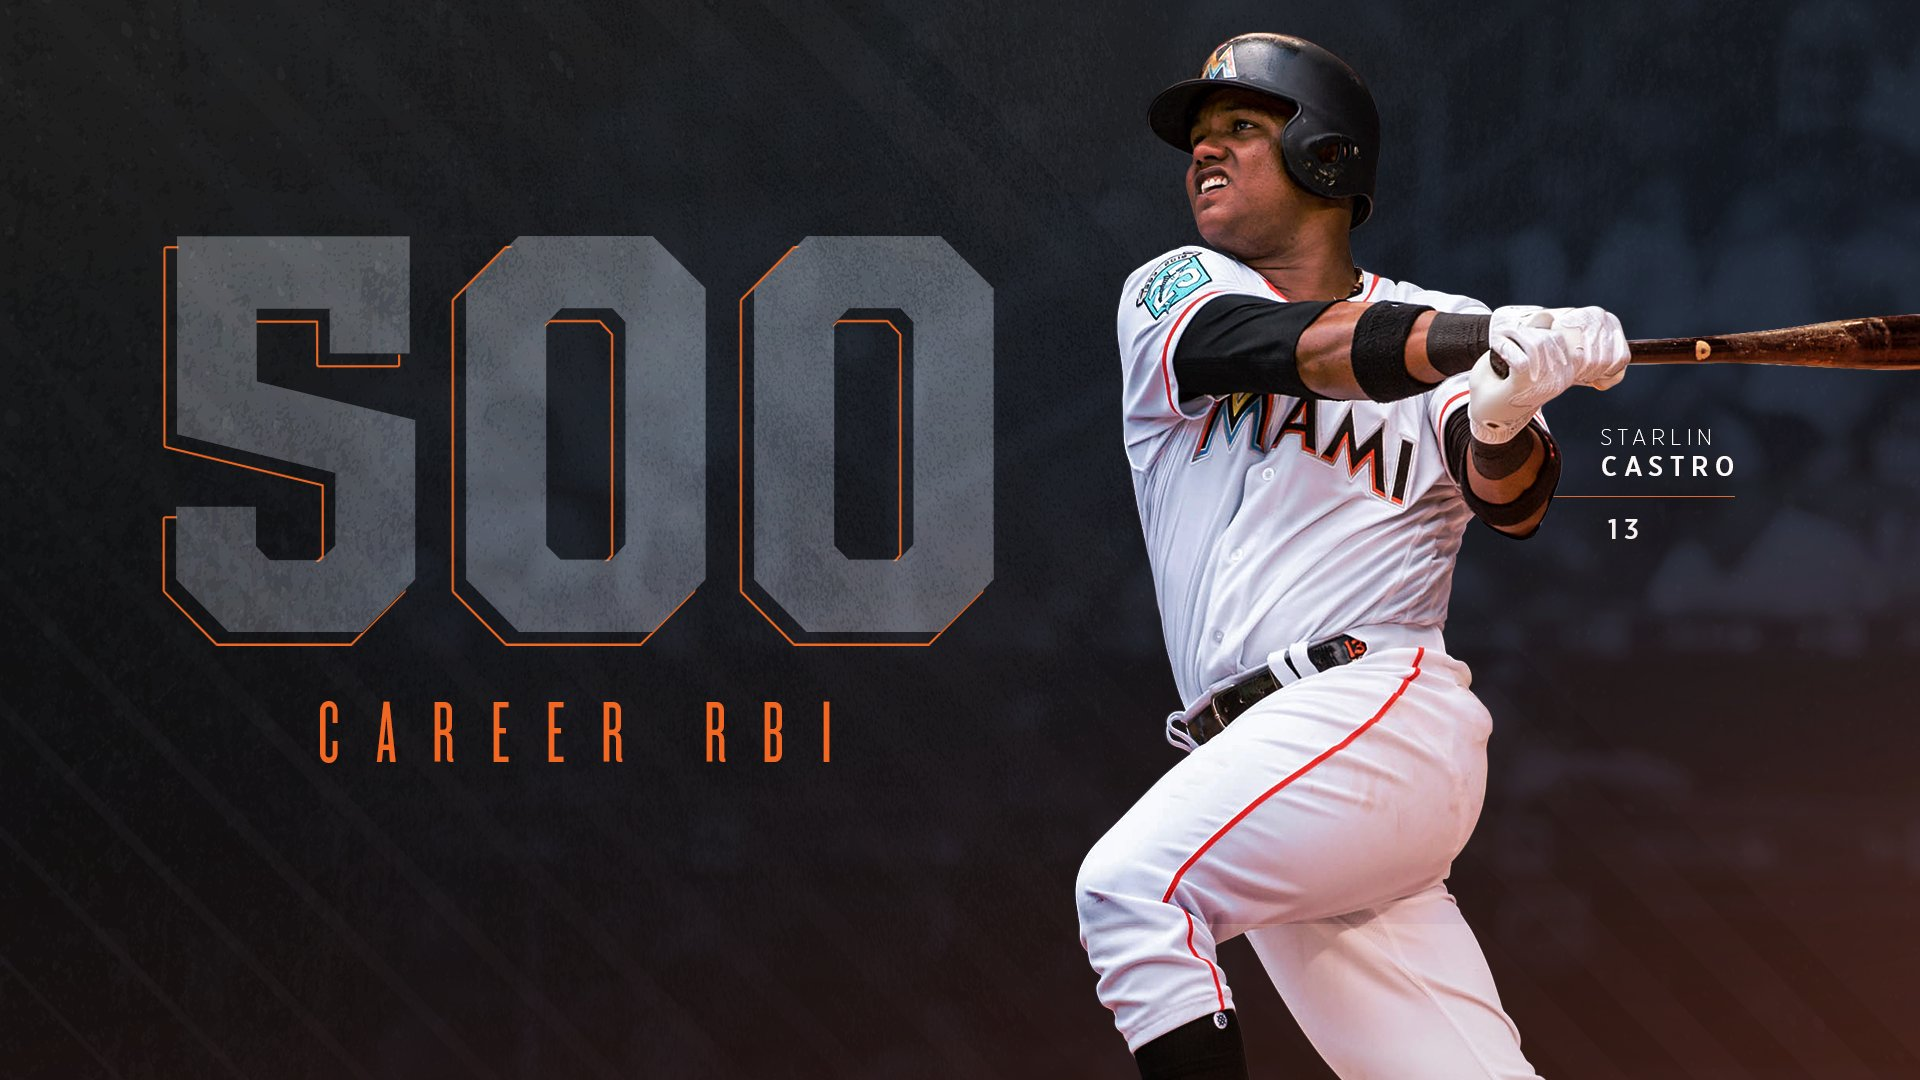 Last night, Starlin Castro reached 500 career RBI.  Congratulations, Starlin! �� https://t.co/sTpQDDc4Ih